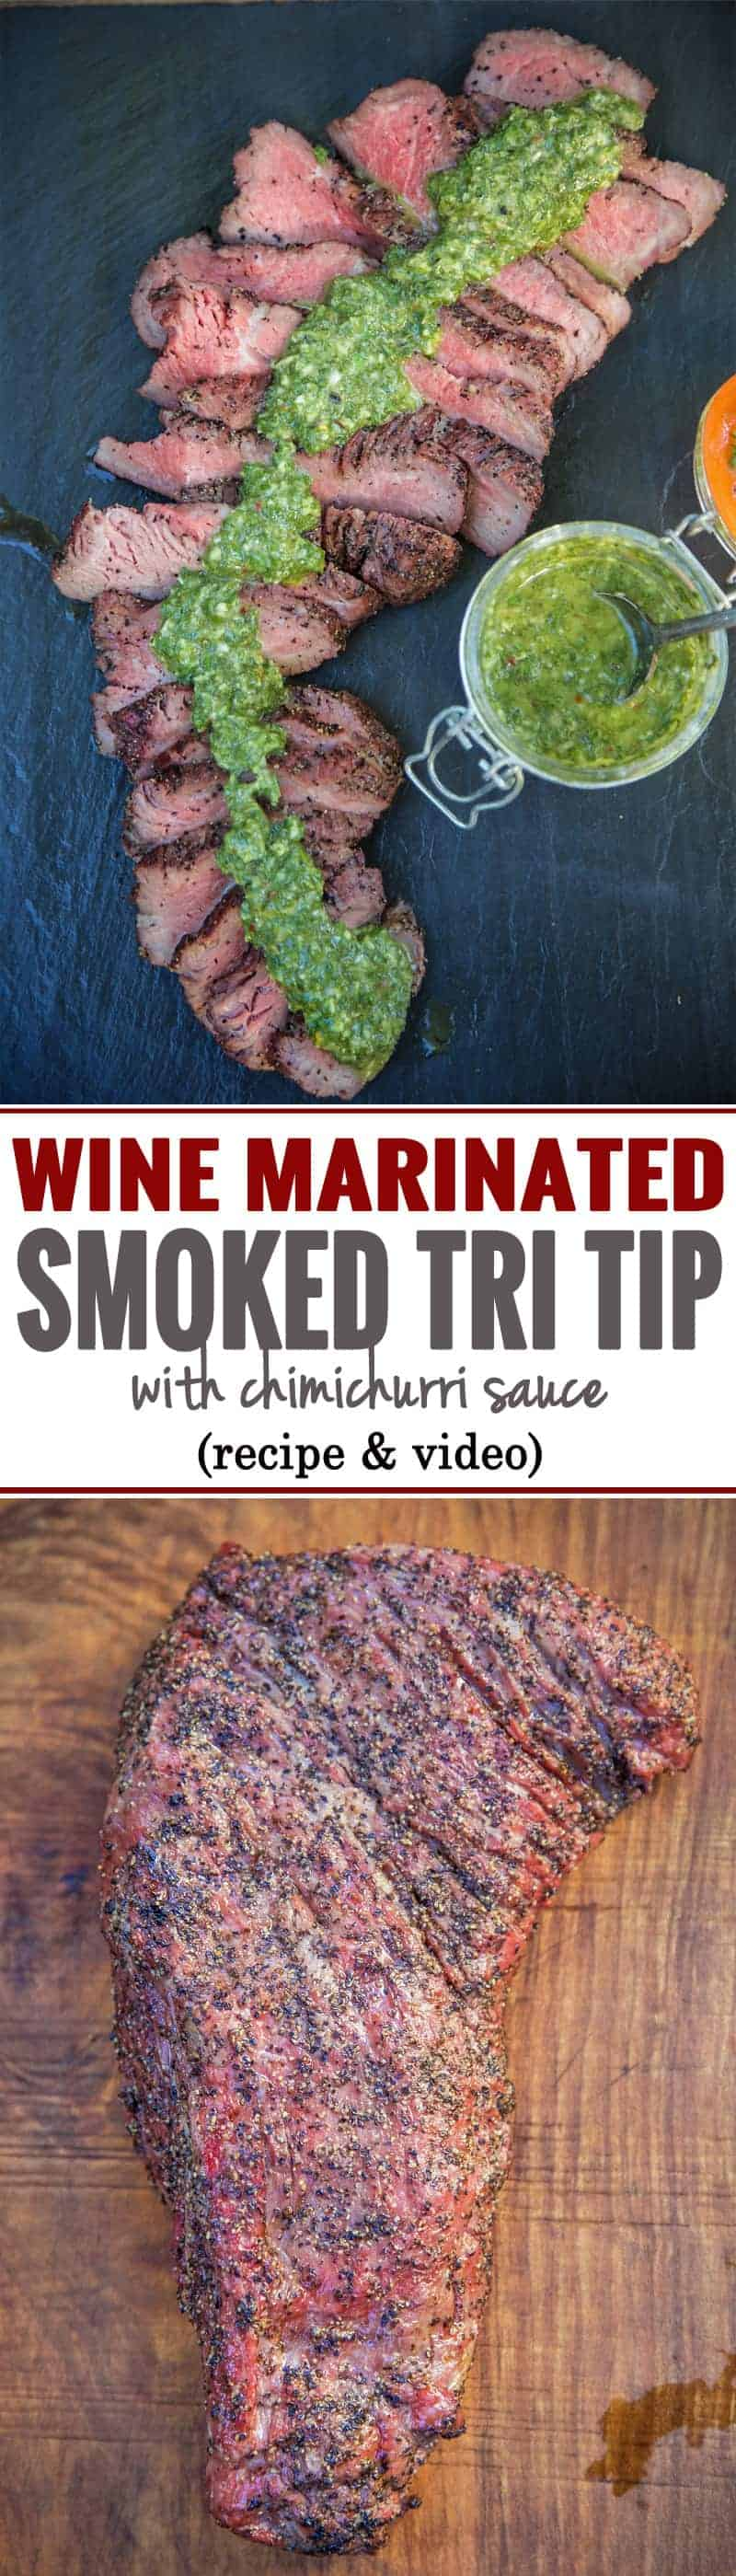 Red Wine Marinated Smoked Tri Tip with Chimichurri Sauce. Full recipe and video!